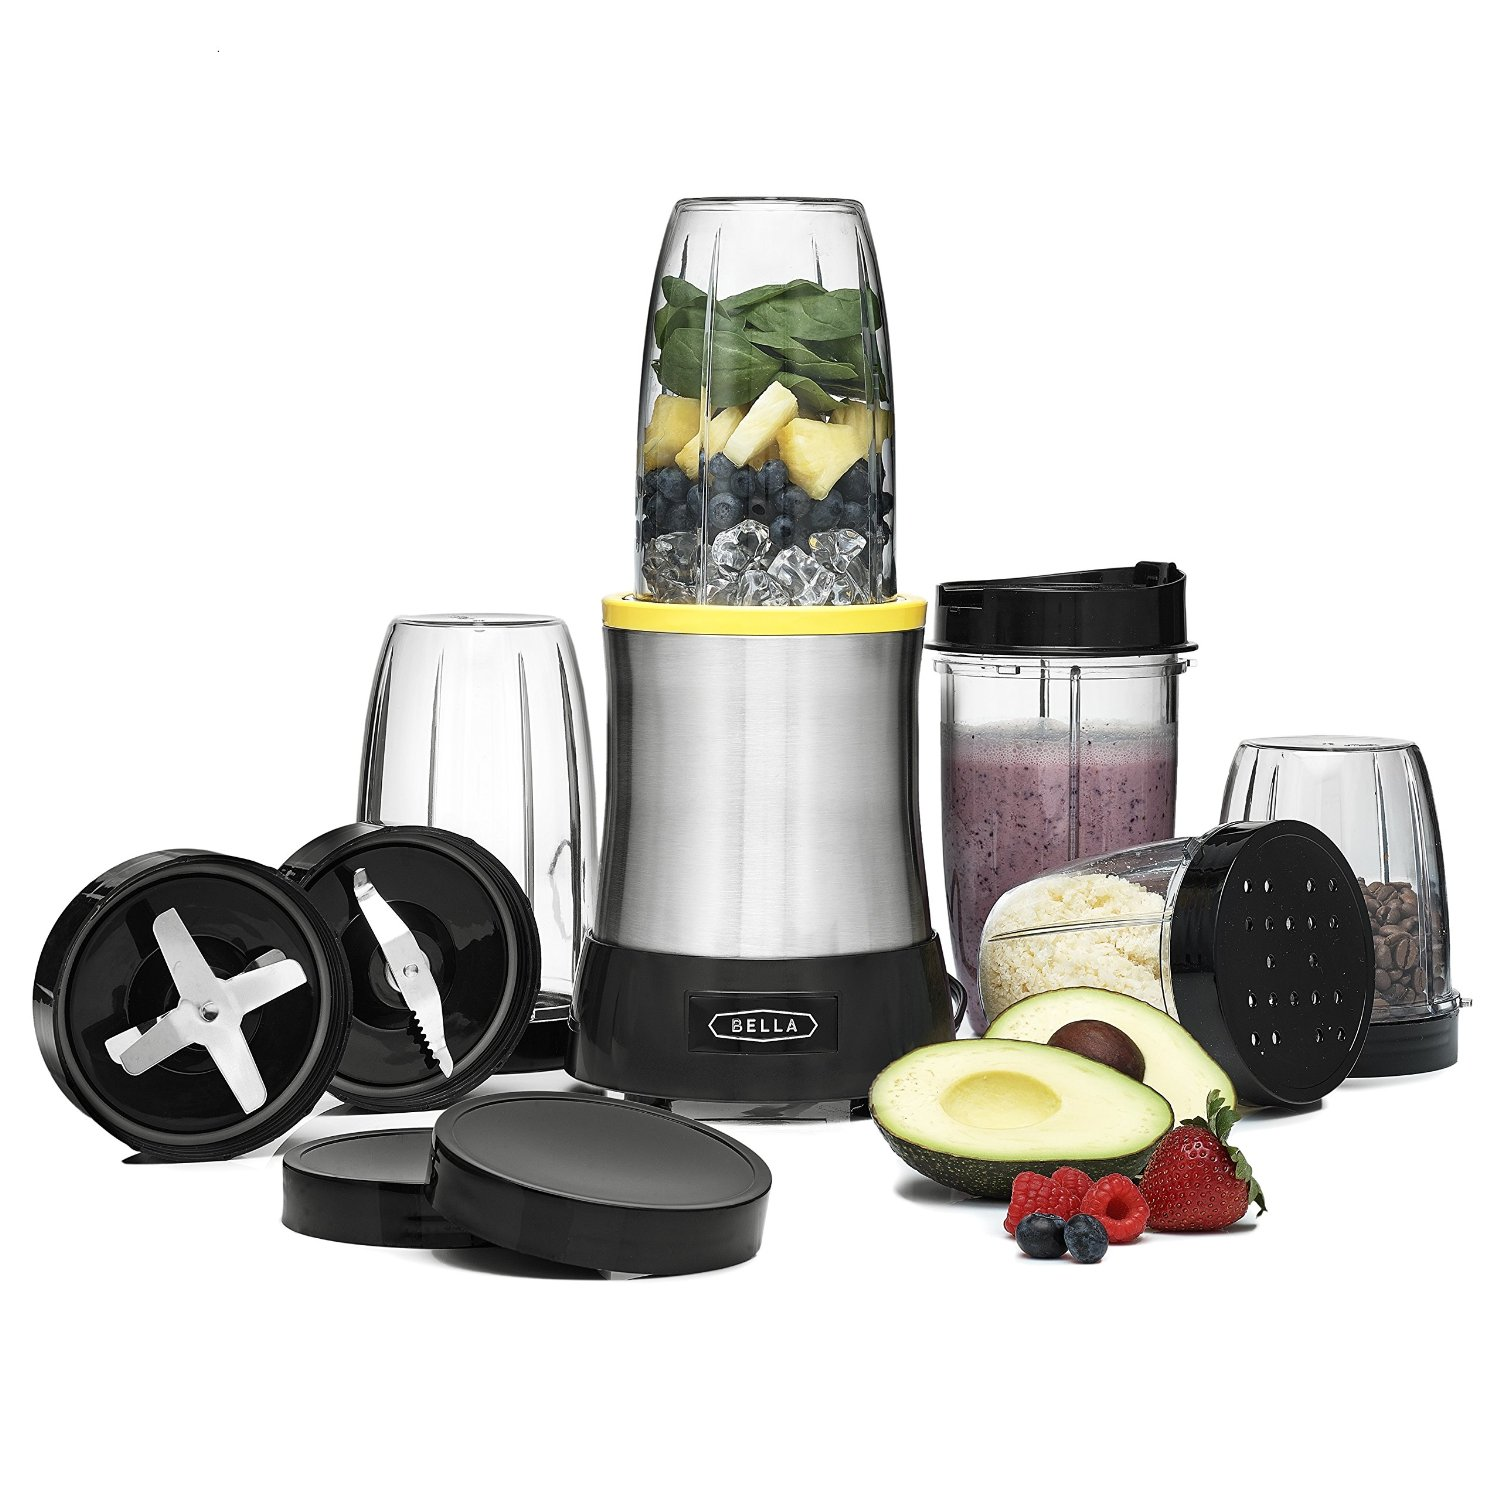 BELLA Rocket Extract PRO Power Blender, 15 Piece set, stainless steel